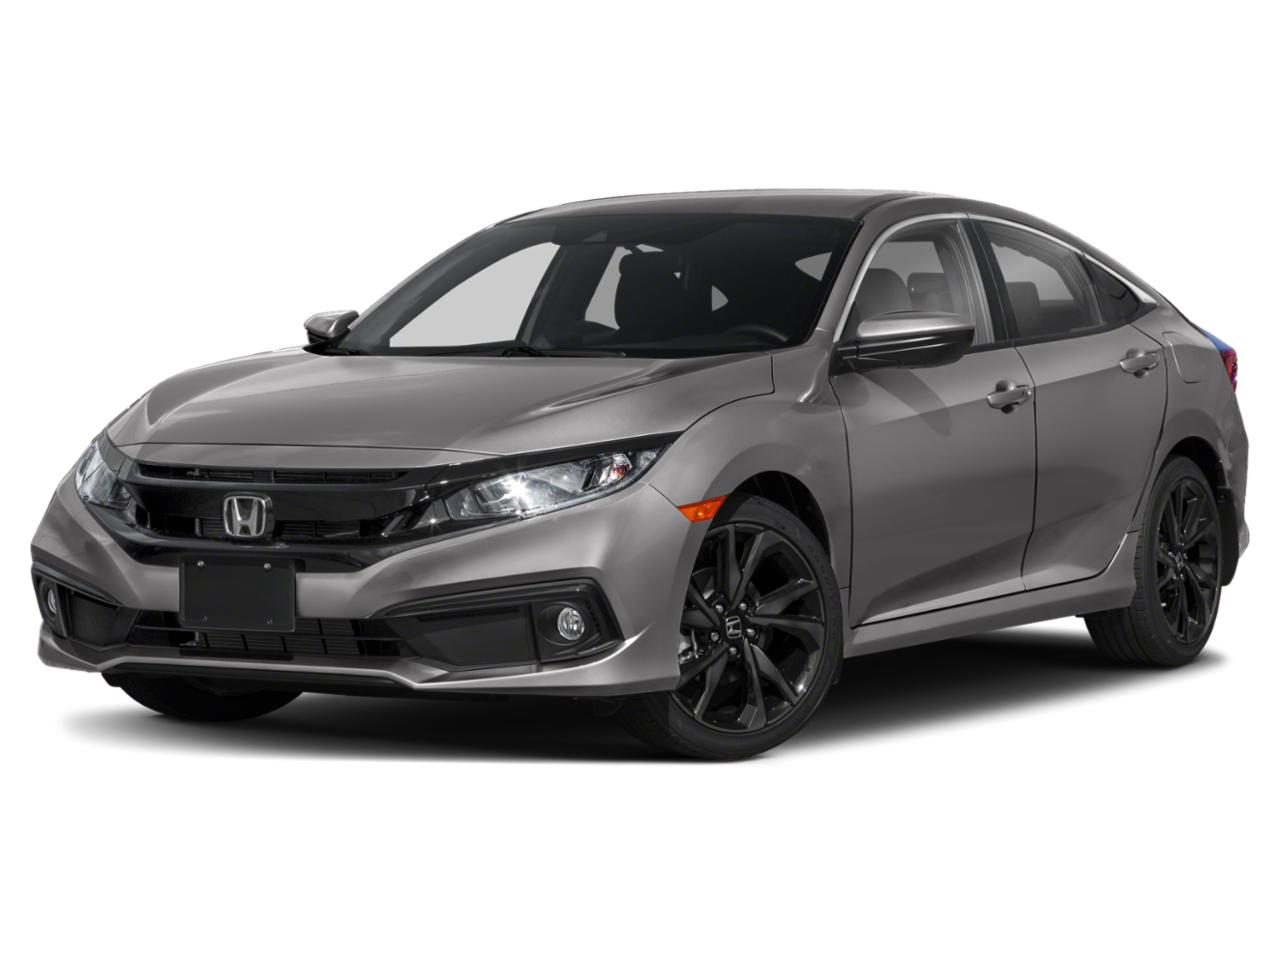 2020 Honda Civic Sedan Vehicle Photo in Oshkosh, WI 54904